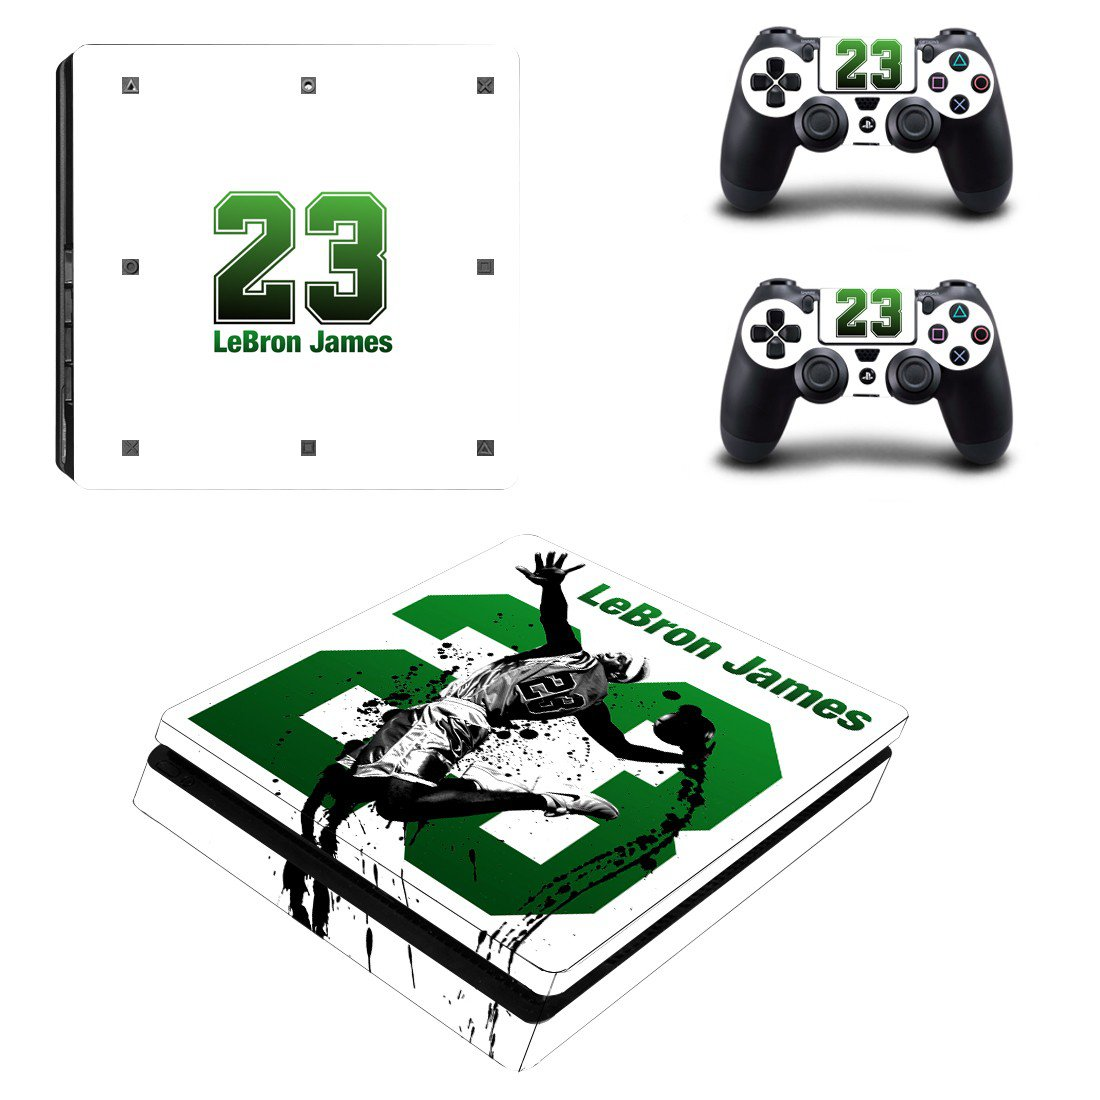 Lebron James Play Station 4 slim skin decal for console and 2 controllers